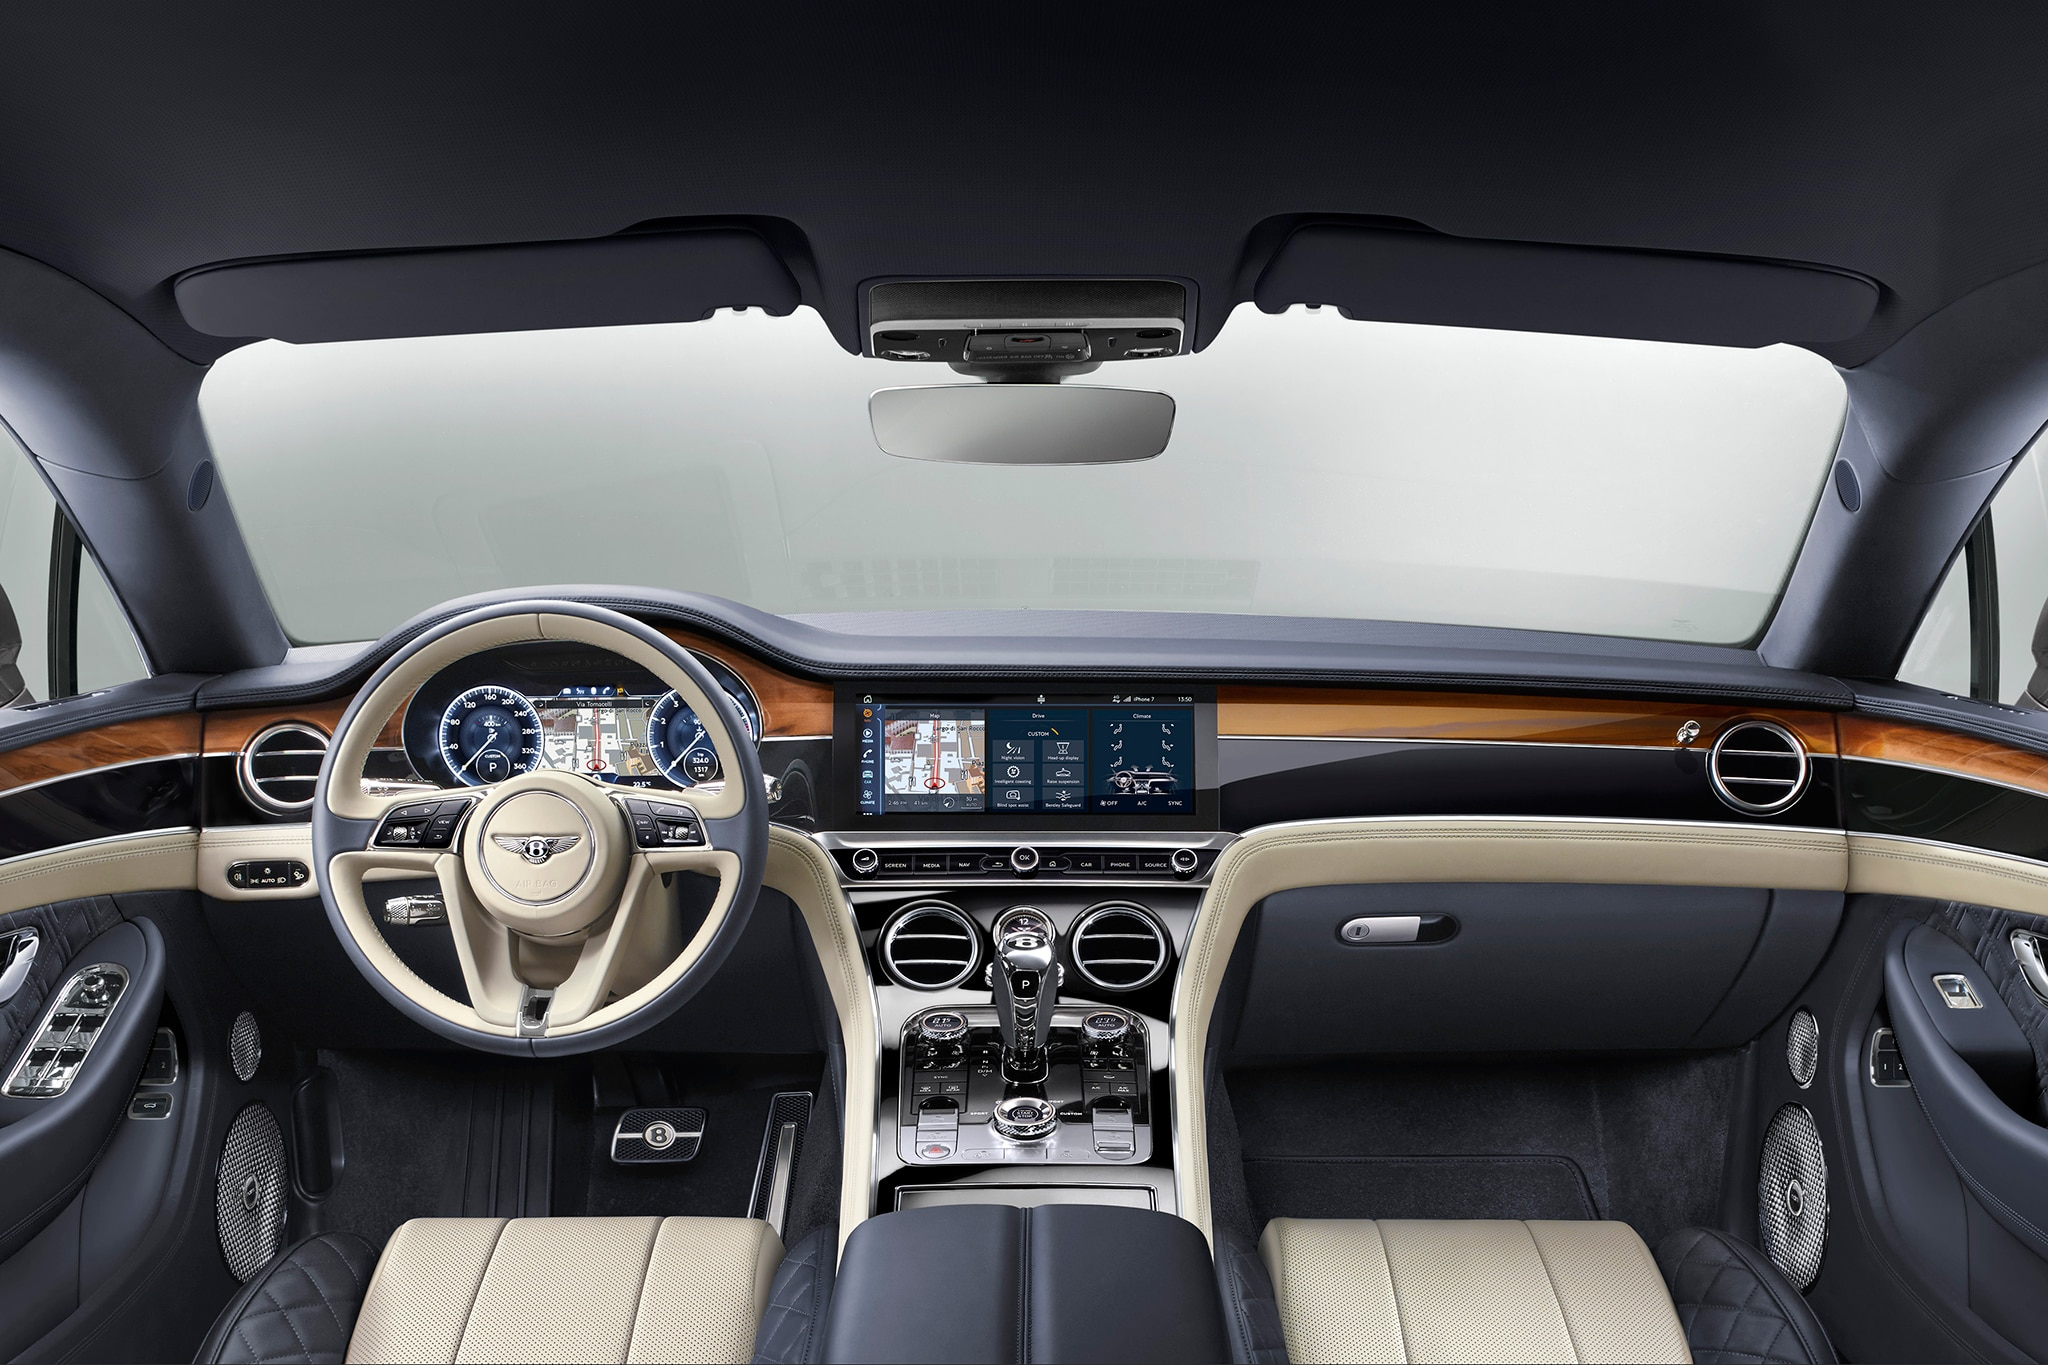 Continental Gt Interior 2018 >> 2019 Bentley Continental GT Cruises Out of Crewe | Automobile Magazine